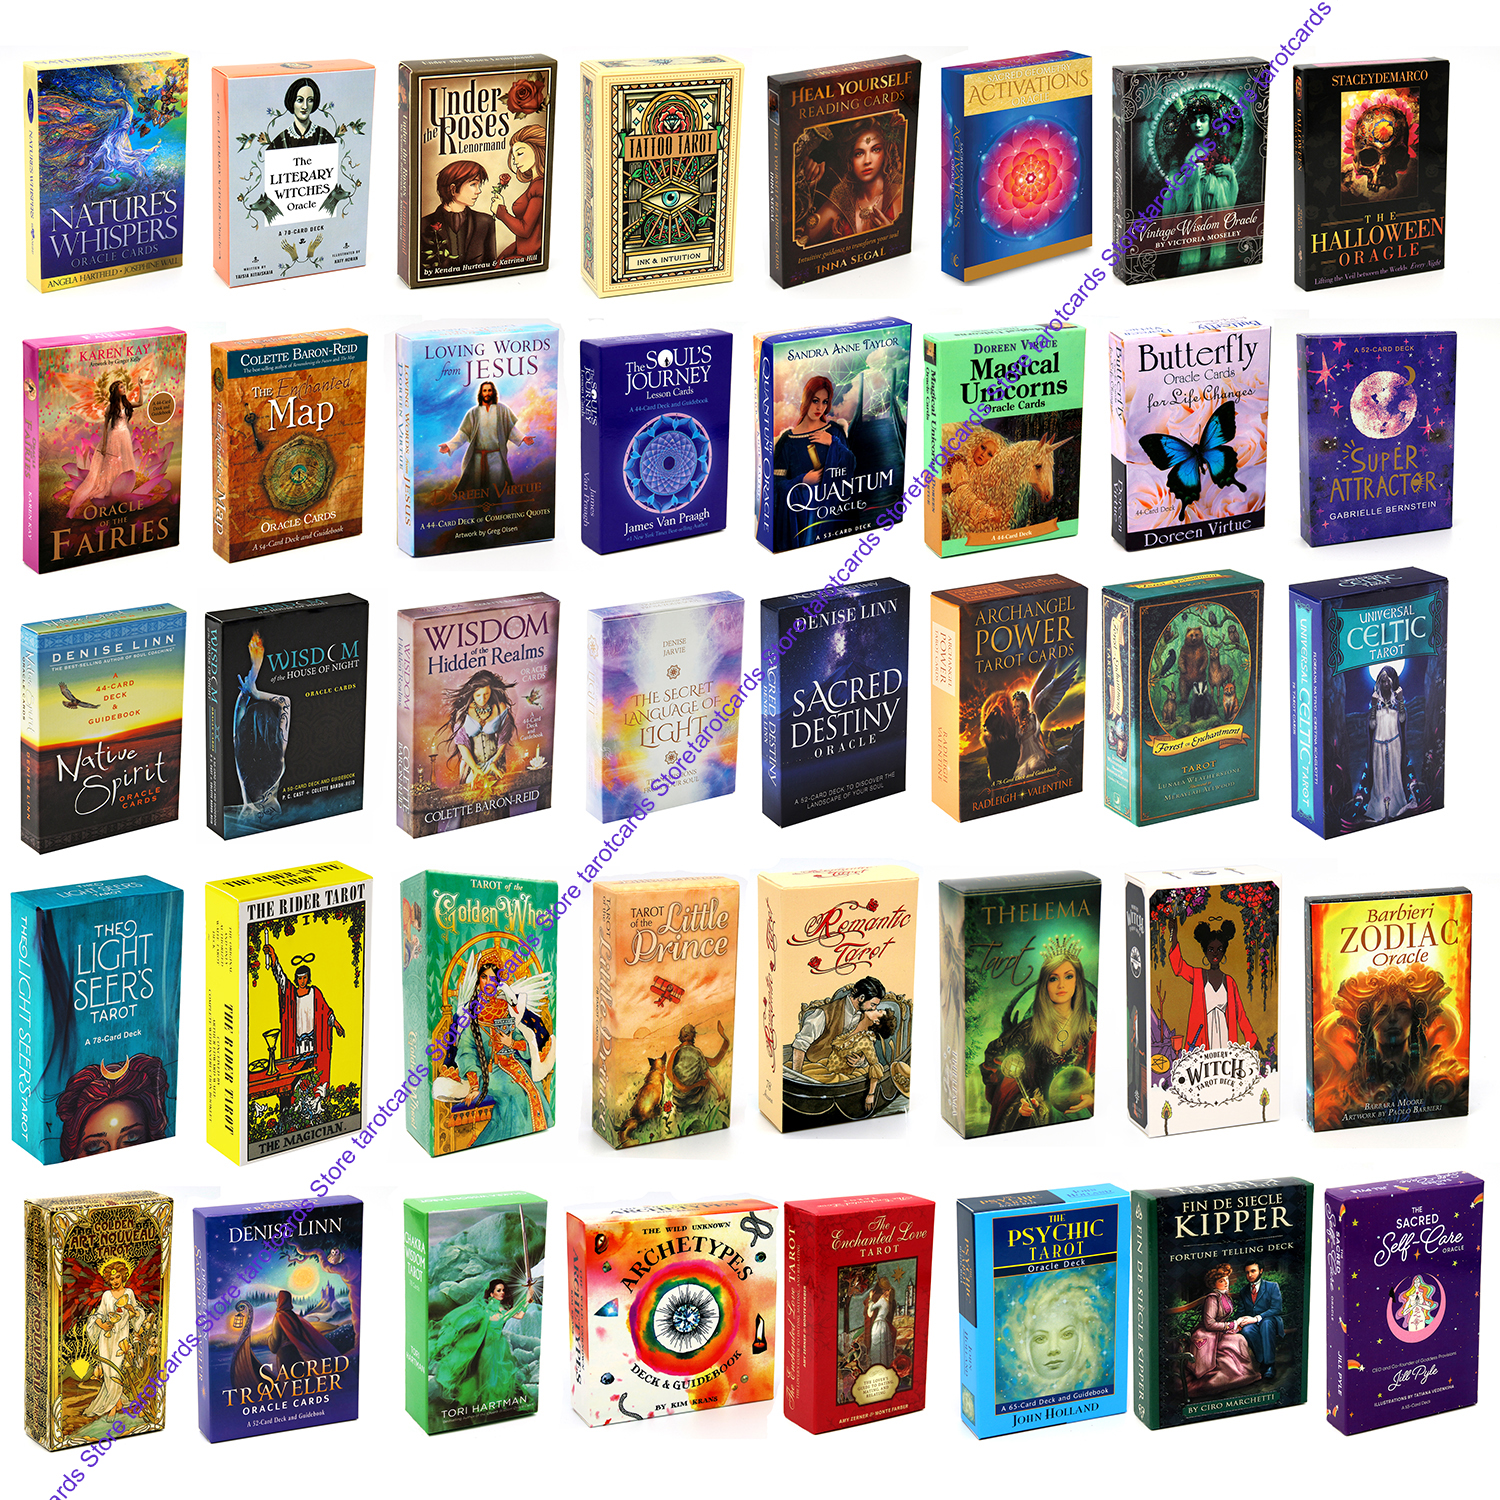 140 Types Of Tarot Light Seer's Native Spirit Wisdom Of The House Of Night Oracle The Secret Language Light Sacred Destiny Deck